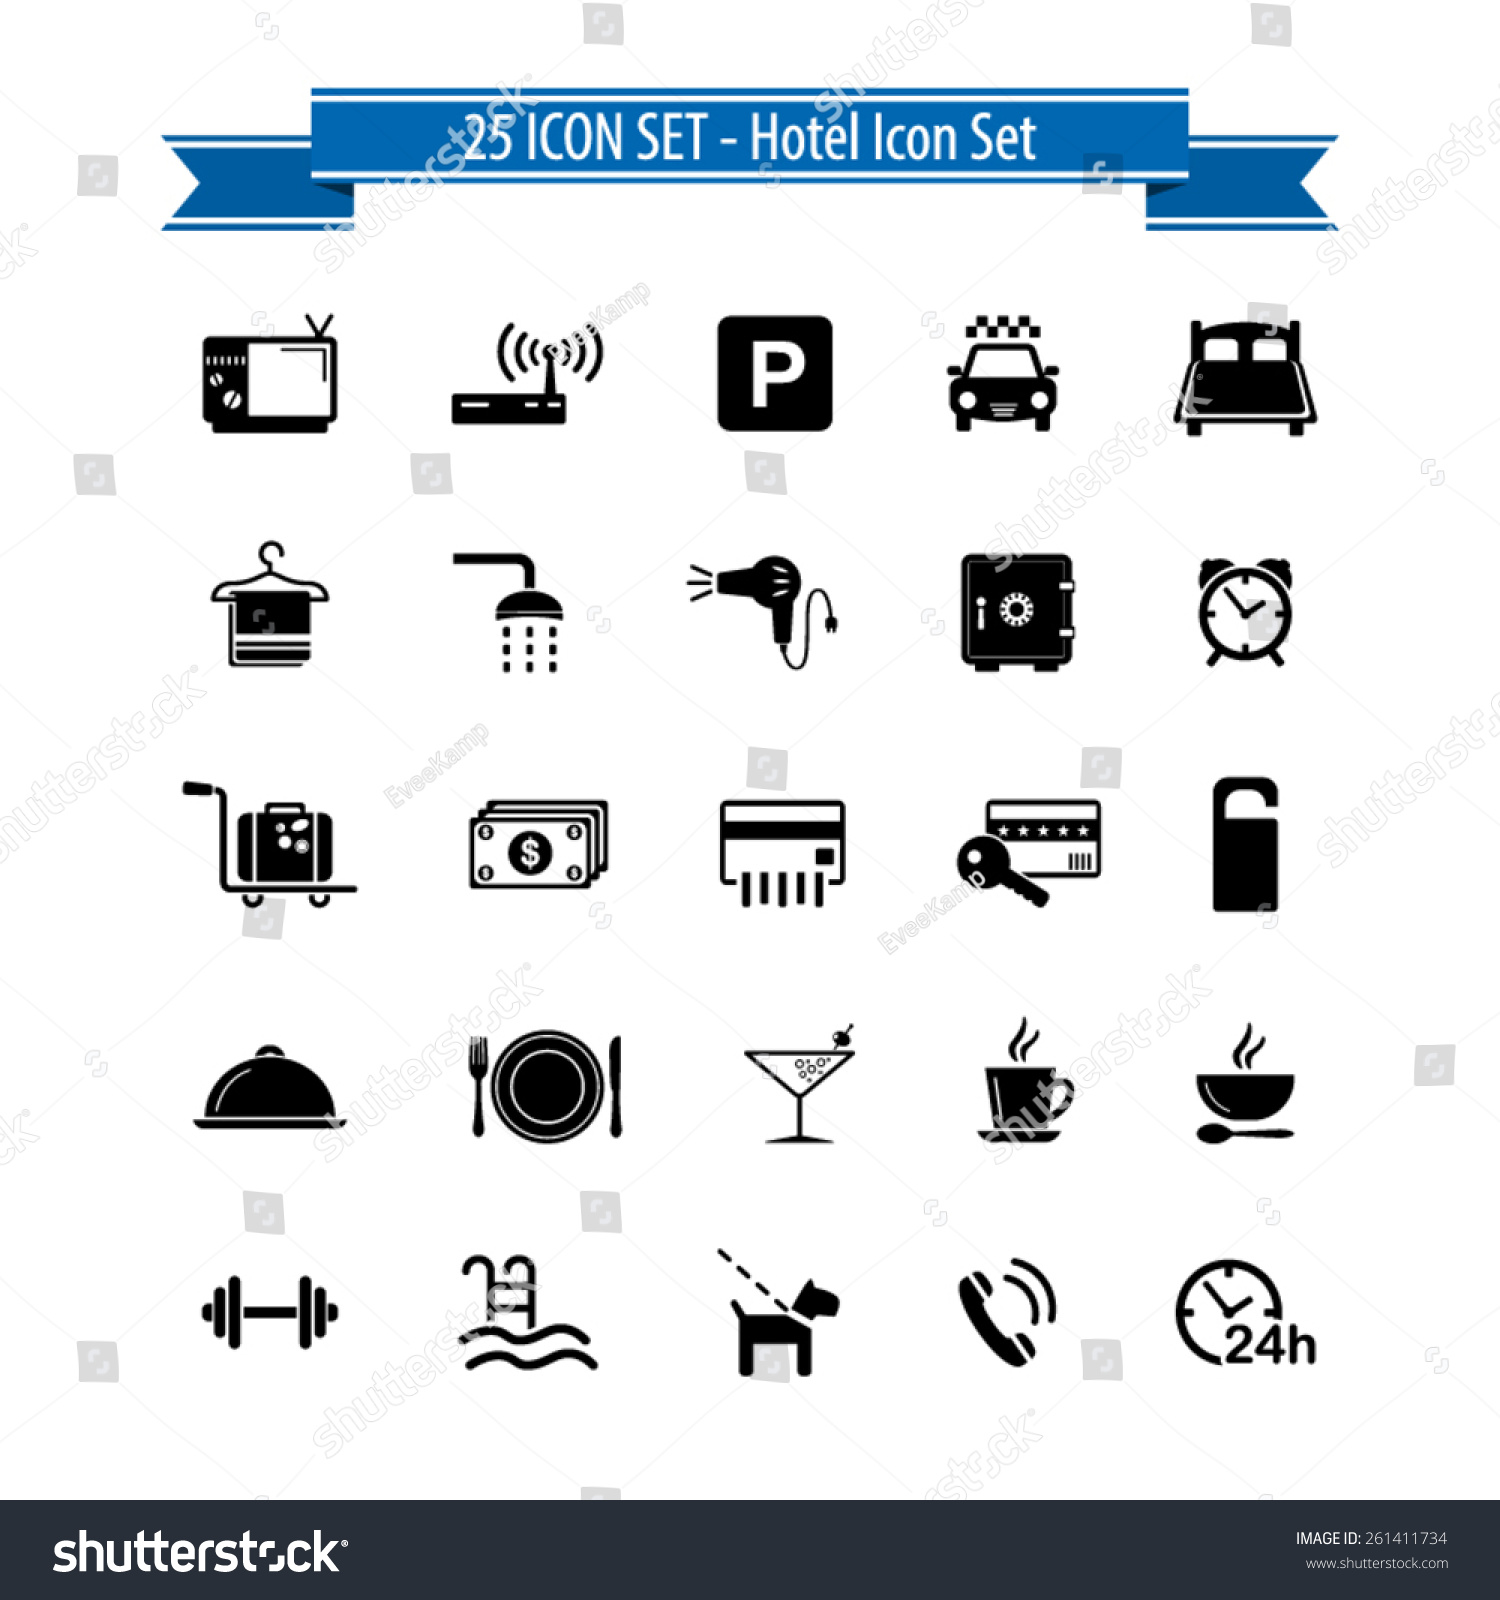 Cafe Kitchen Design Hotel Icon Set 25 Hotel Amenities Stock Vector 261411734